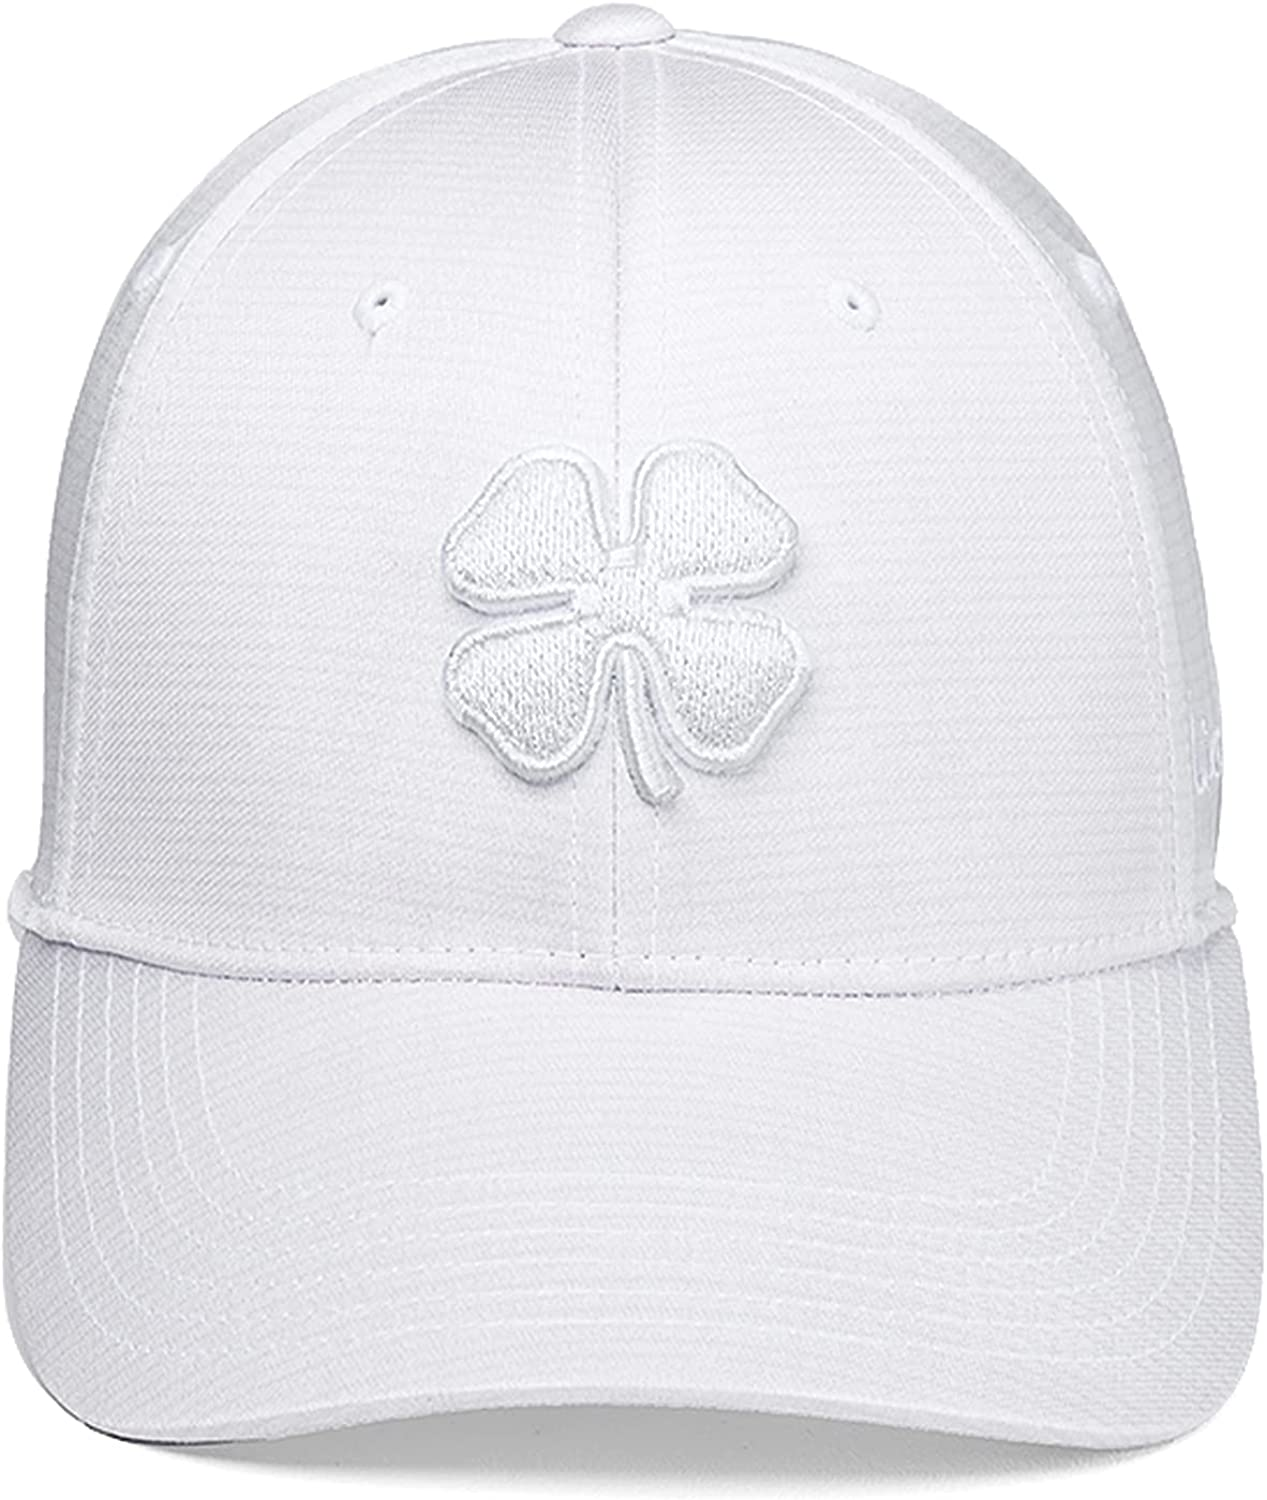 Black Clover Crazy Luck 5 Cap, White hat with White Clover S/M